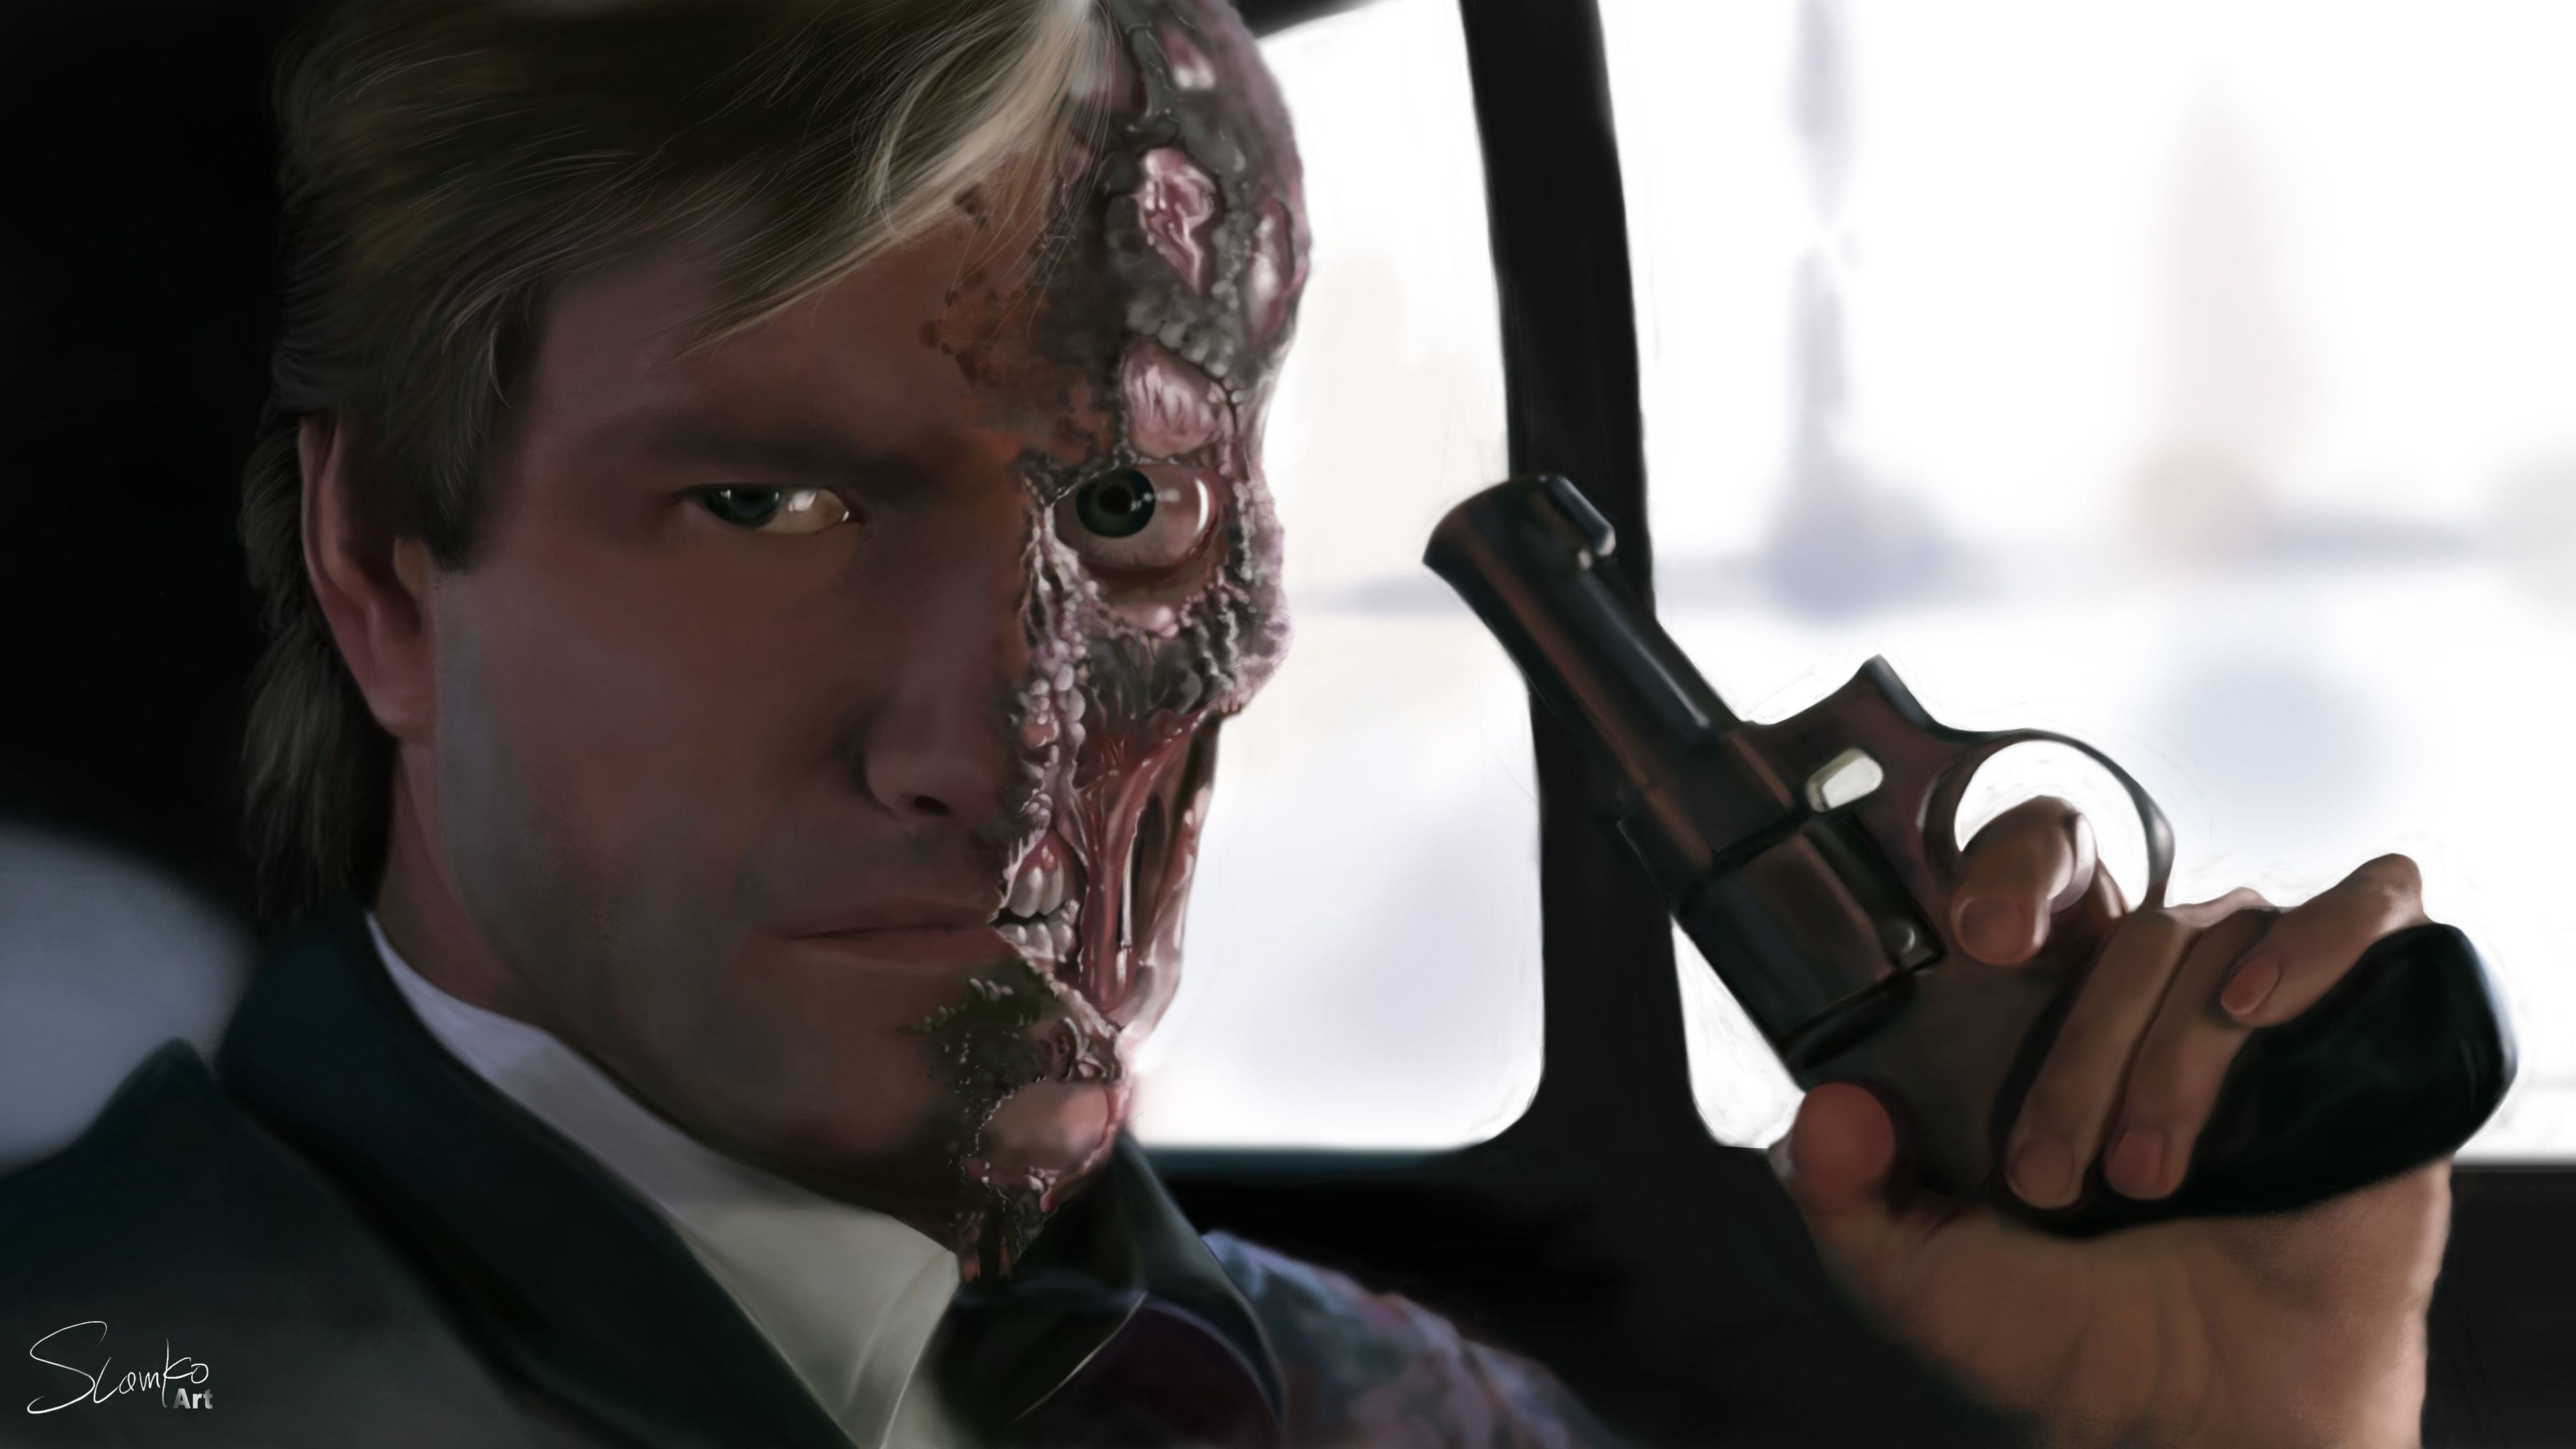 two face supervillain 4k 1545588610 - Two Face Supervillain 4k - two face wallpapers, supervillain wallpapers, superheroes wallpapers, hd-wallpapers, digital art wallpapers, artwork wallpapers, 5k wallpapers, 4k-wallpapers